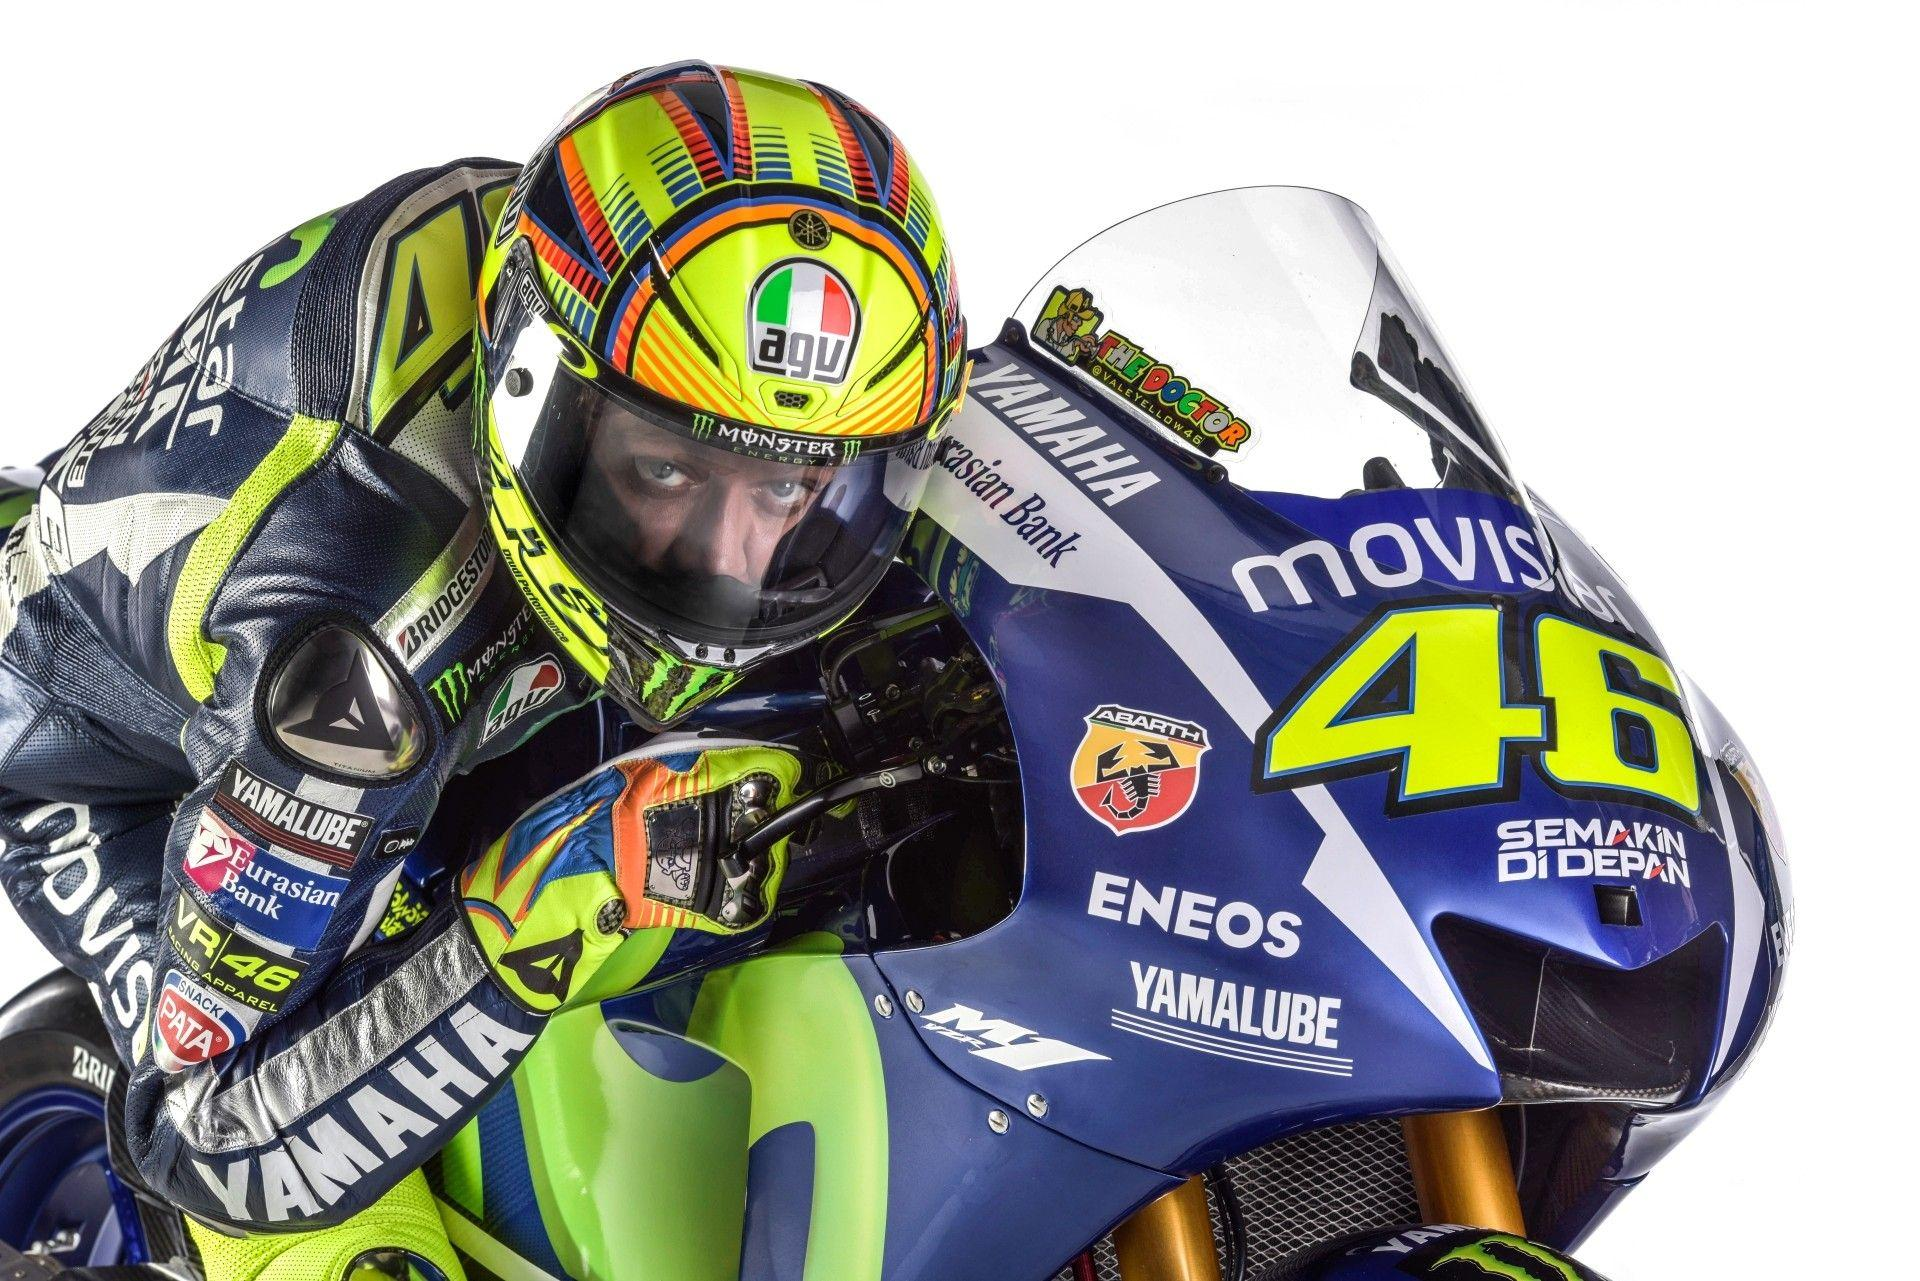 Valentino Rossi Says He Will Never Race in World Superbike